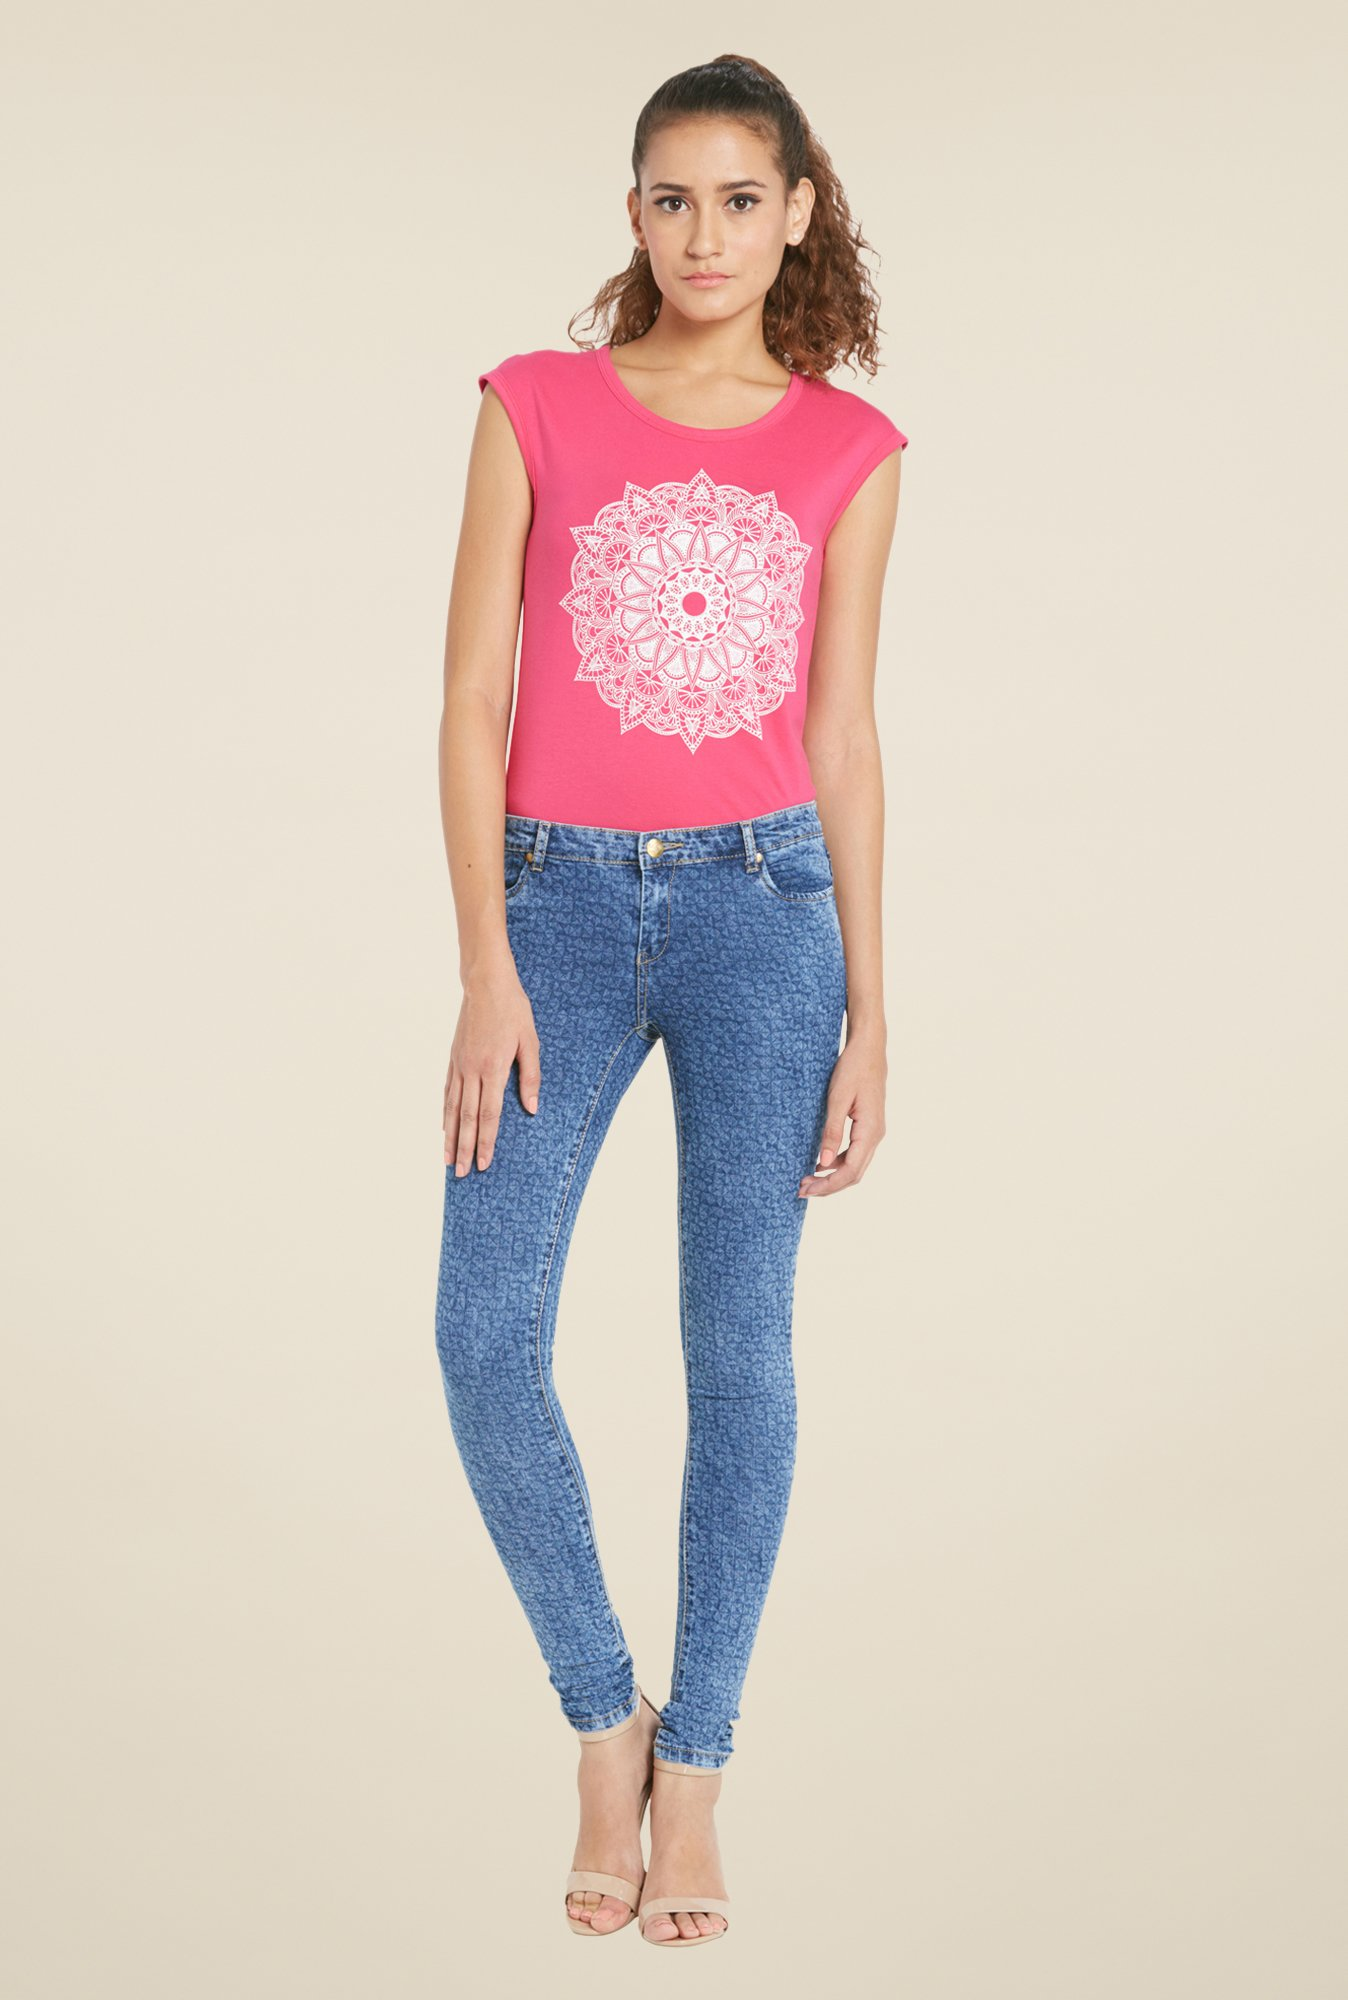 Jeans Printed Jeans – How To Use, Buy, Models